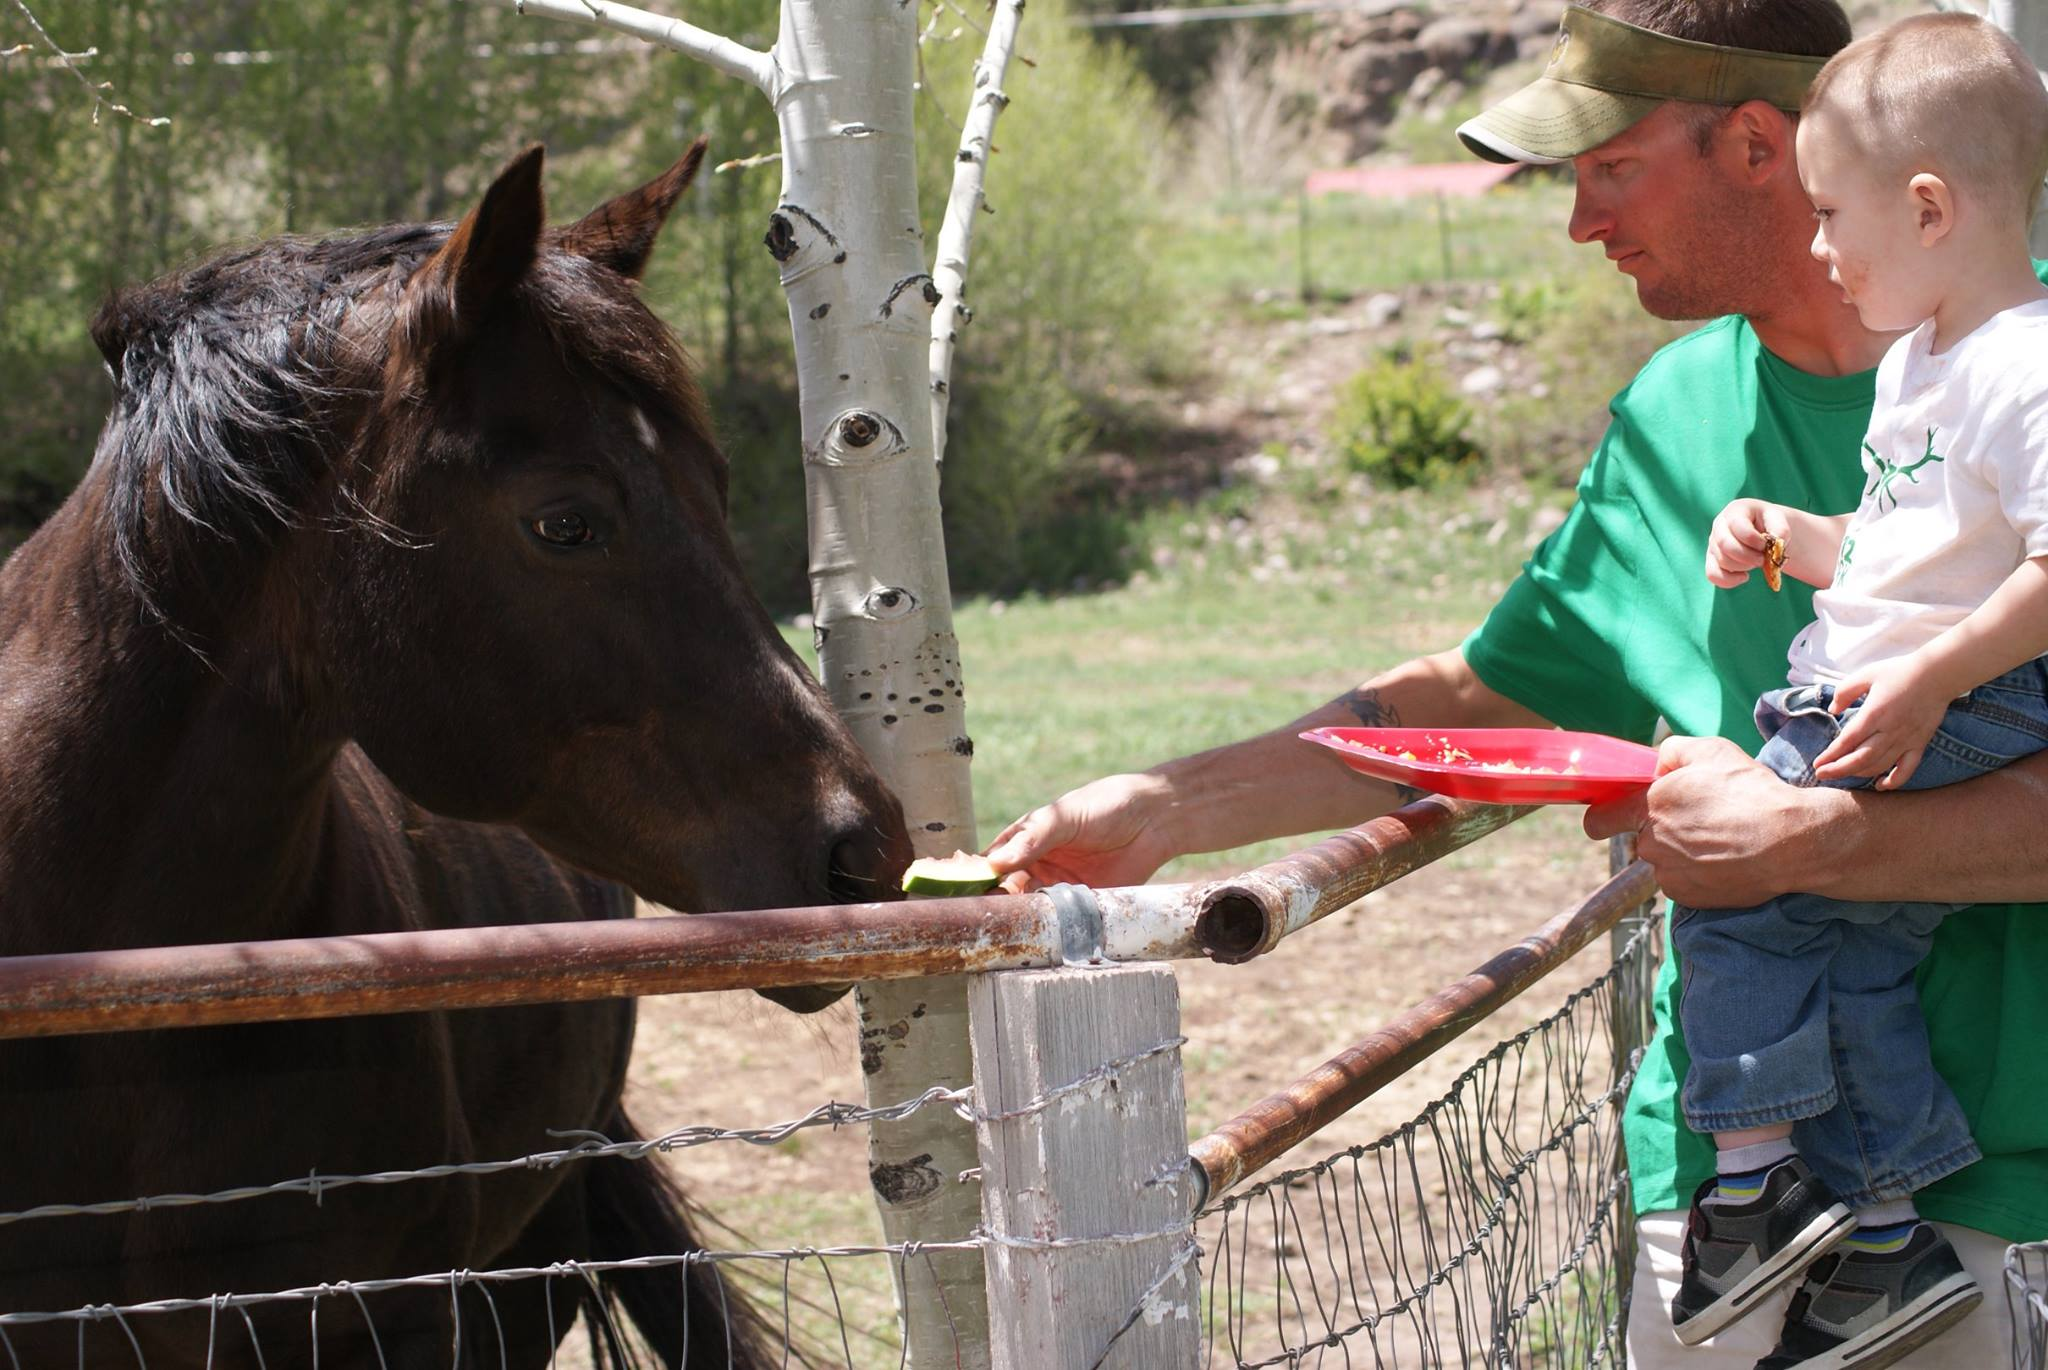 A man in a green shirt, holding his son, shares some food with the dark brown horse